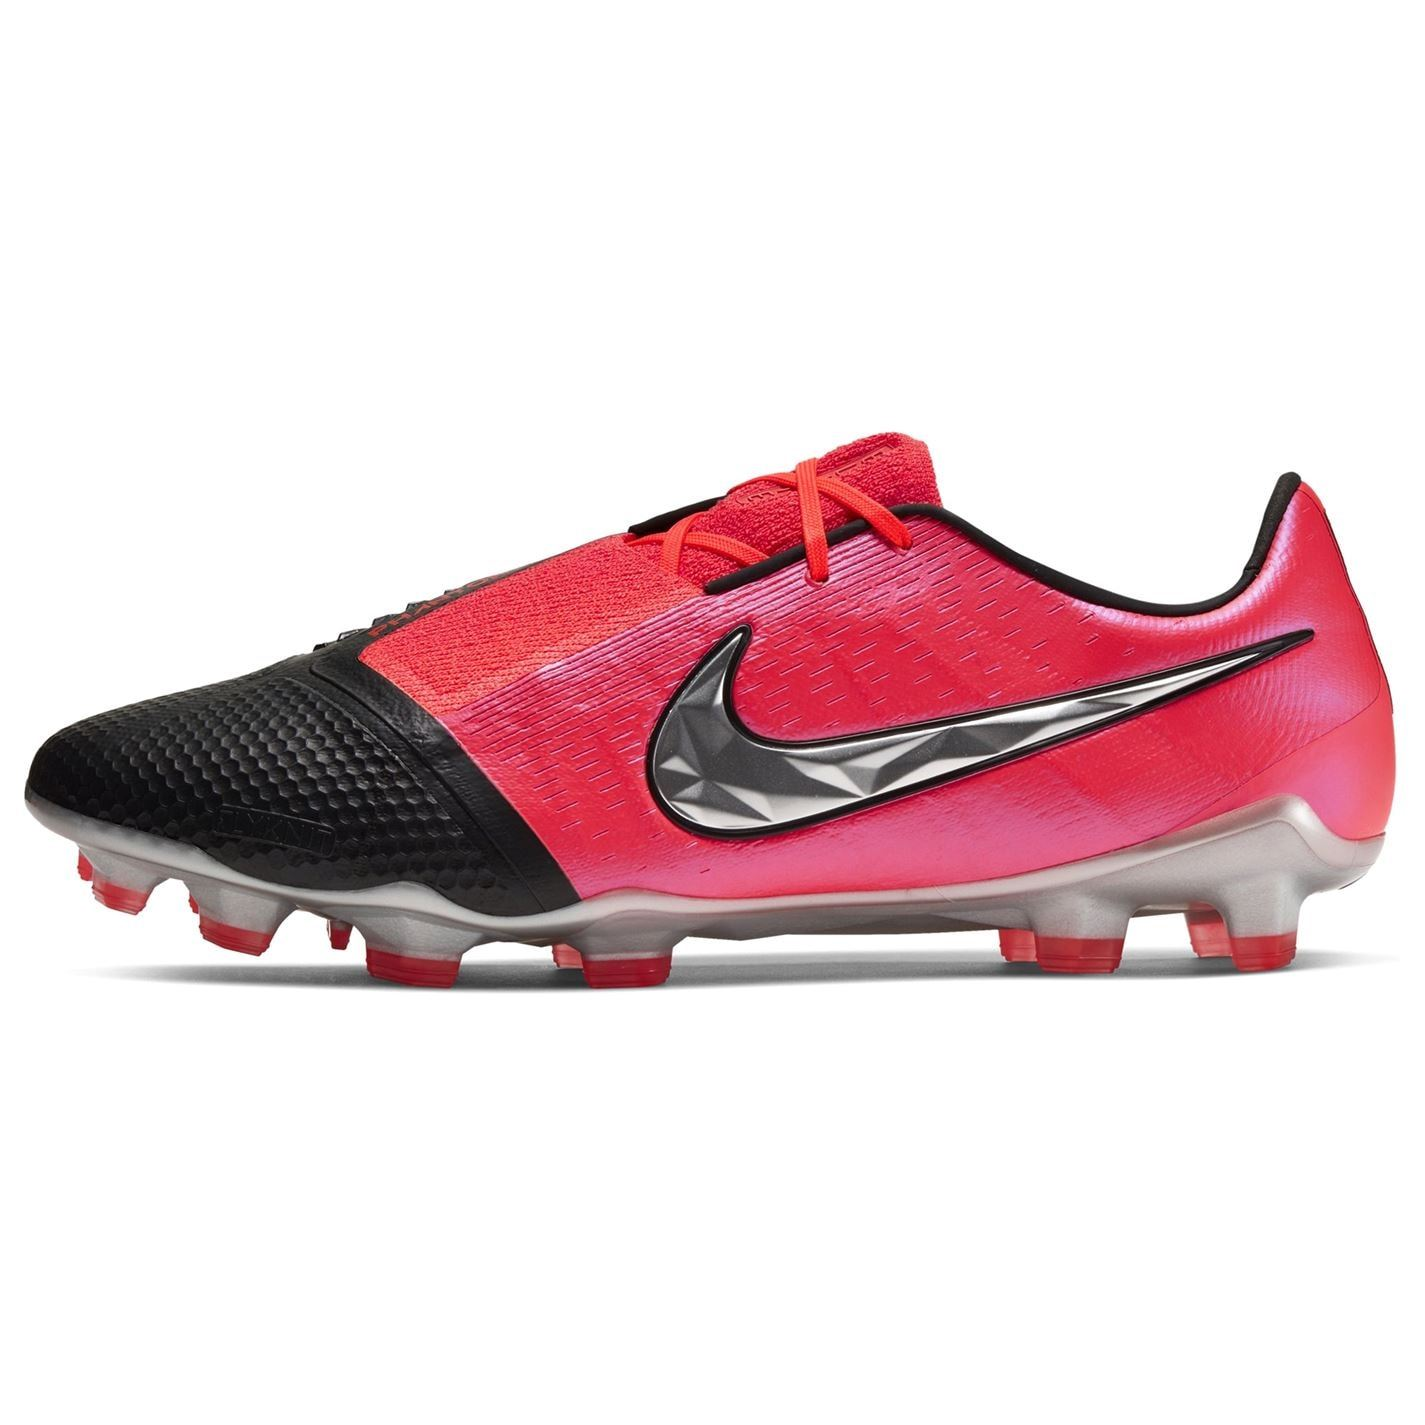 Nike-Phantom-Venom-Elite-Homme-FG-Firm-Ground-Chaussures-De-Football-Chaussures-de-foot-crampons miniature 14